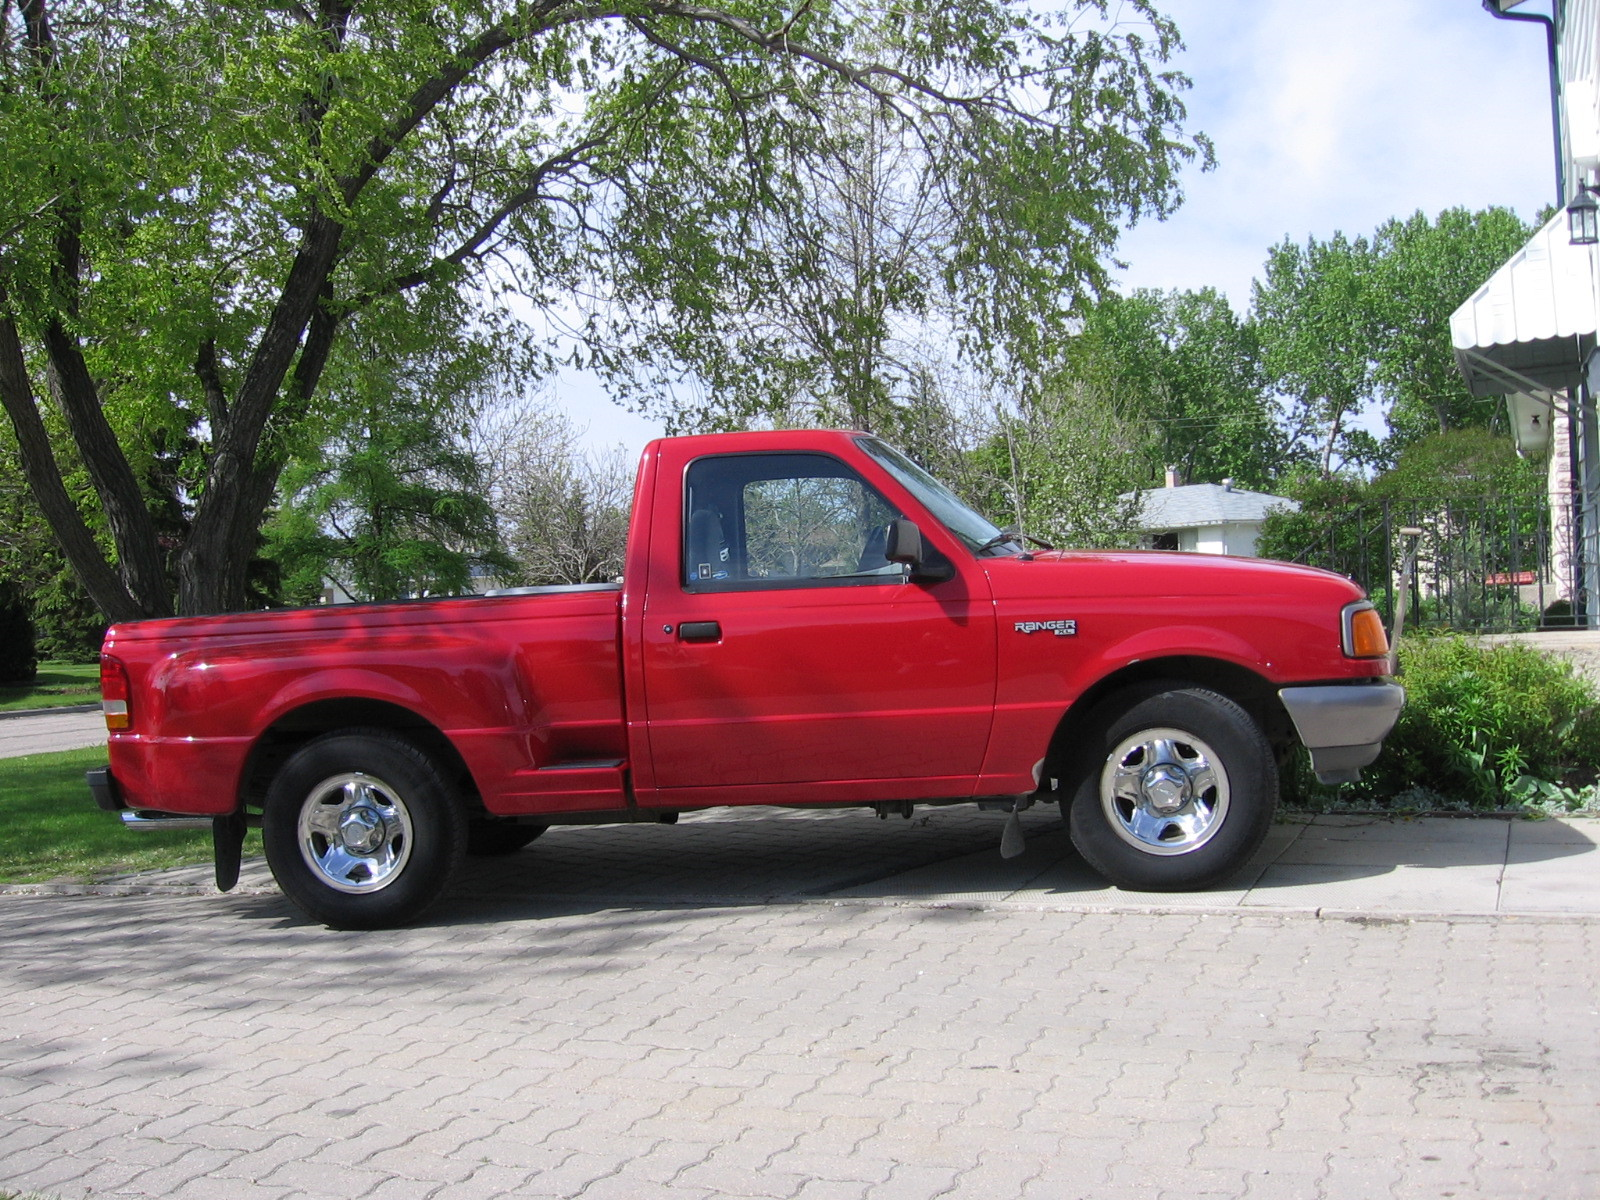 2474 Ford Escort Cosworth together with Ford F 150 Raptor further 1994 Wrangler Yj additionally Truck Beds also Honda. on 1994 ford ranger